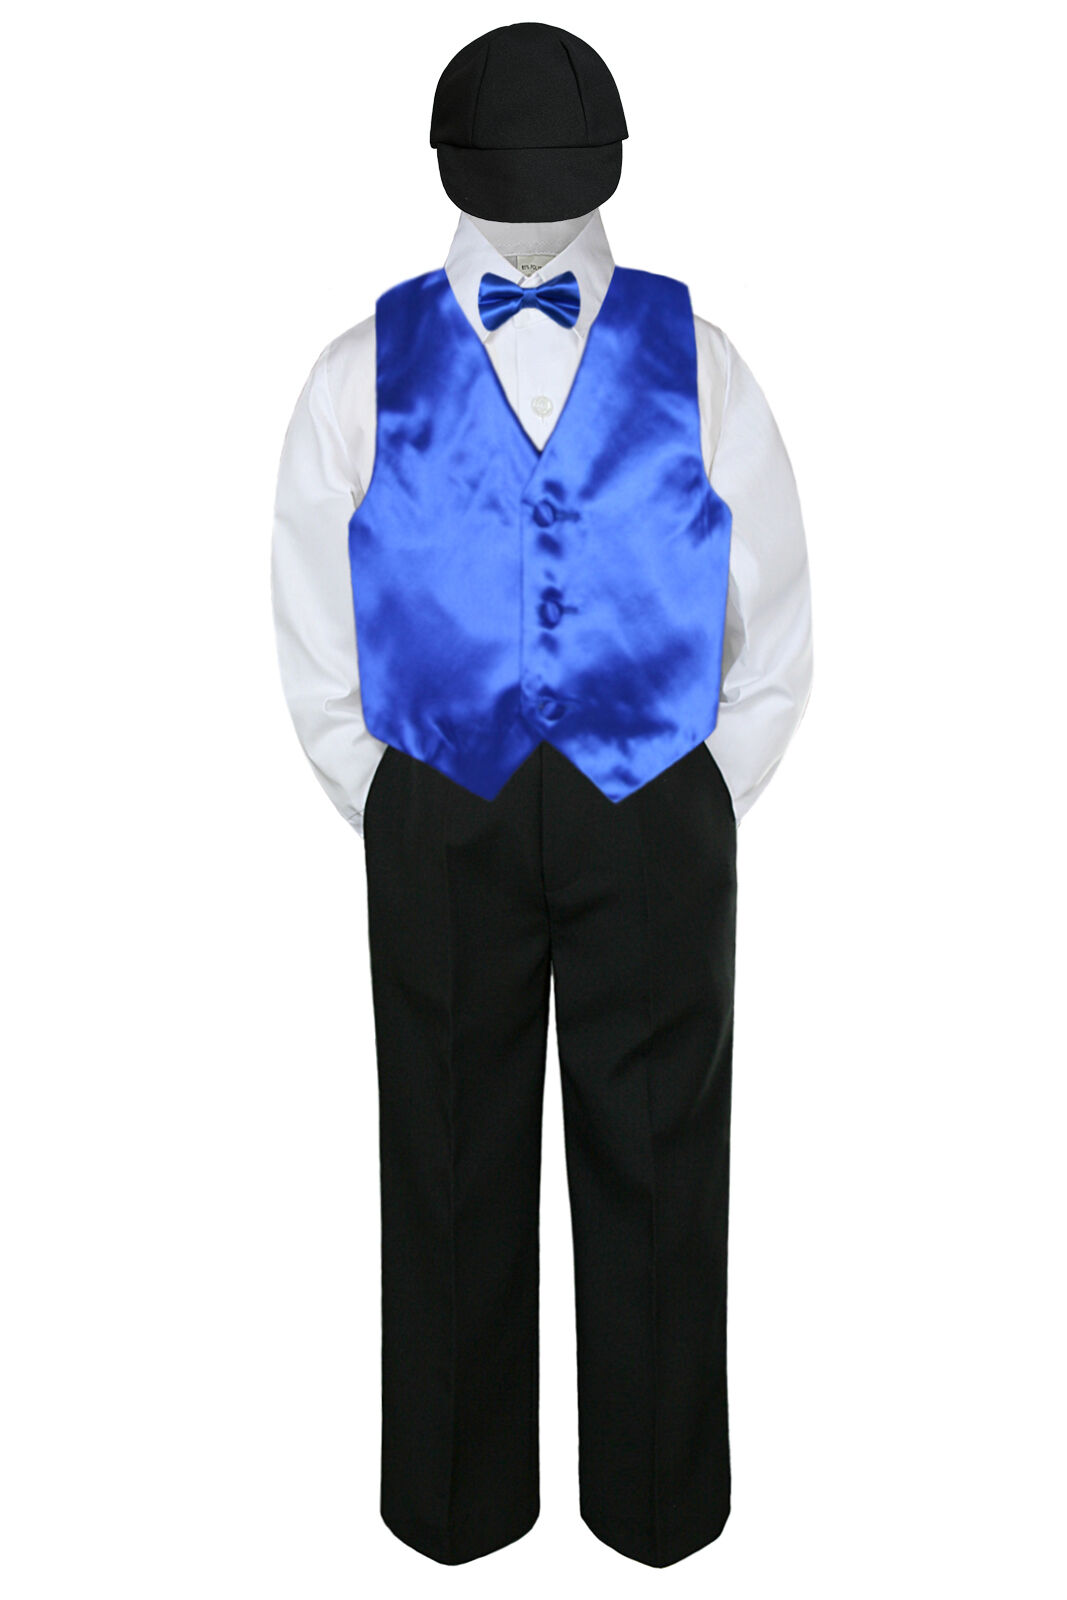 5pc Boys Suit Set Royal Blue Vest Bow Tie Baby Toddler Kid Uniform ...